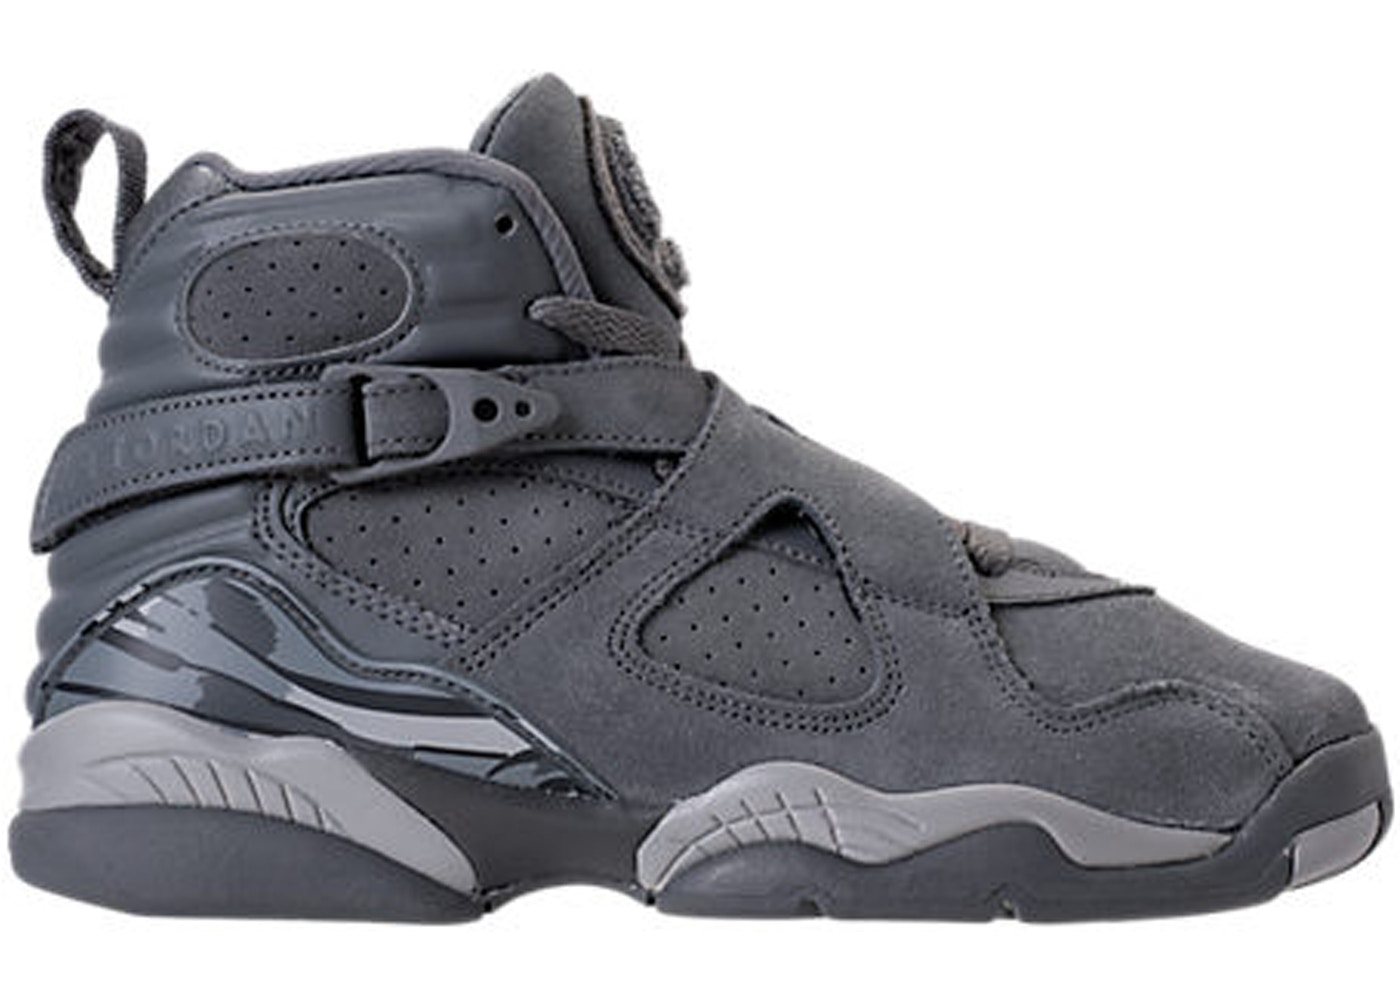 b9ac852c3630 Jordan 8 Retro Cool Grey (GS) - 305368-014